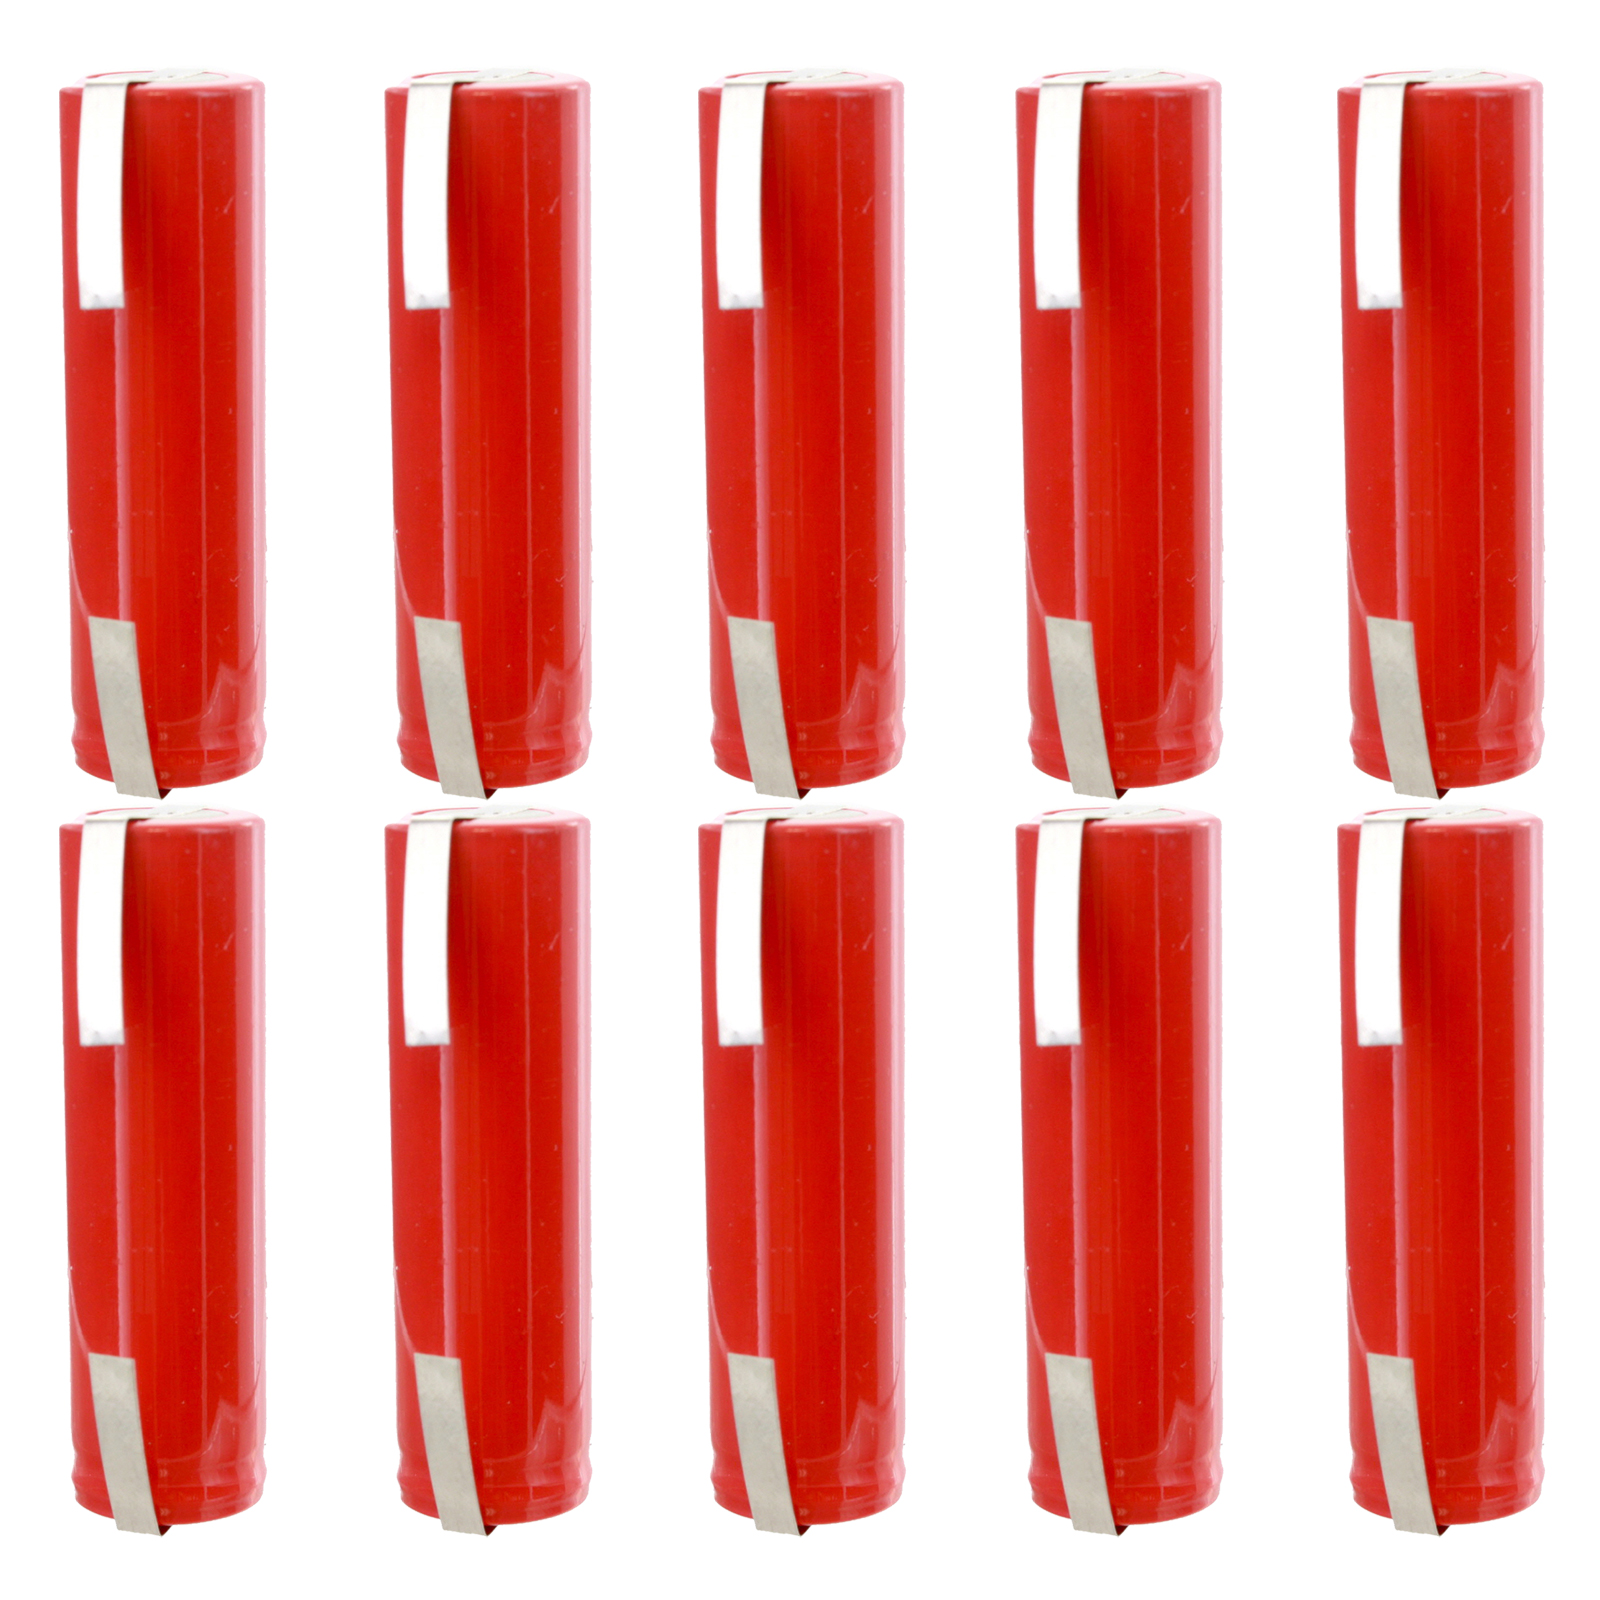 10pc AA 1.2V 1000mAh NiCD Rechargeable Assembly Cell Battery with Tabs